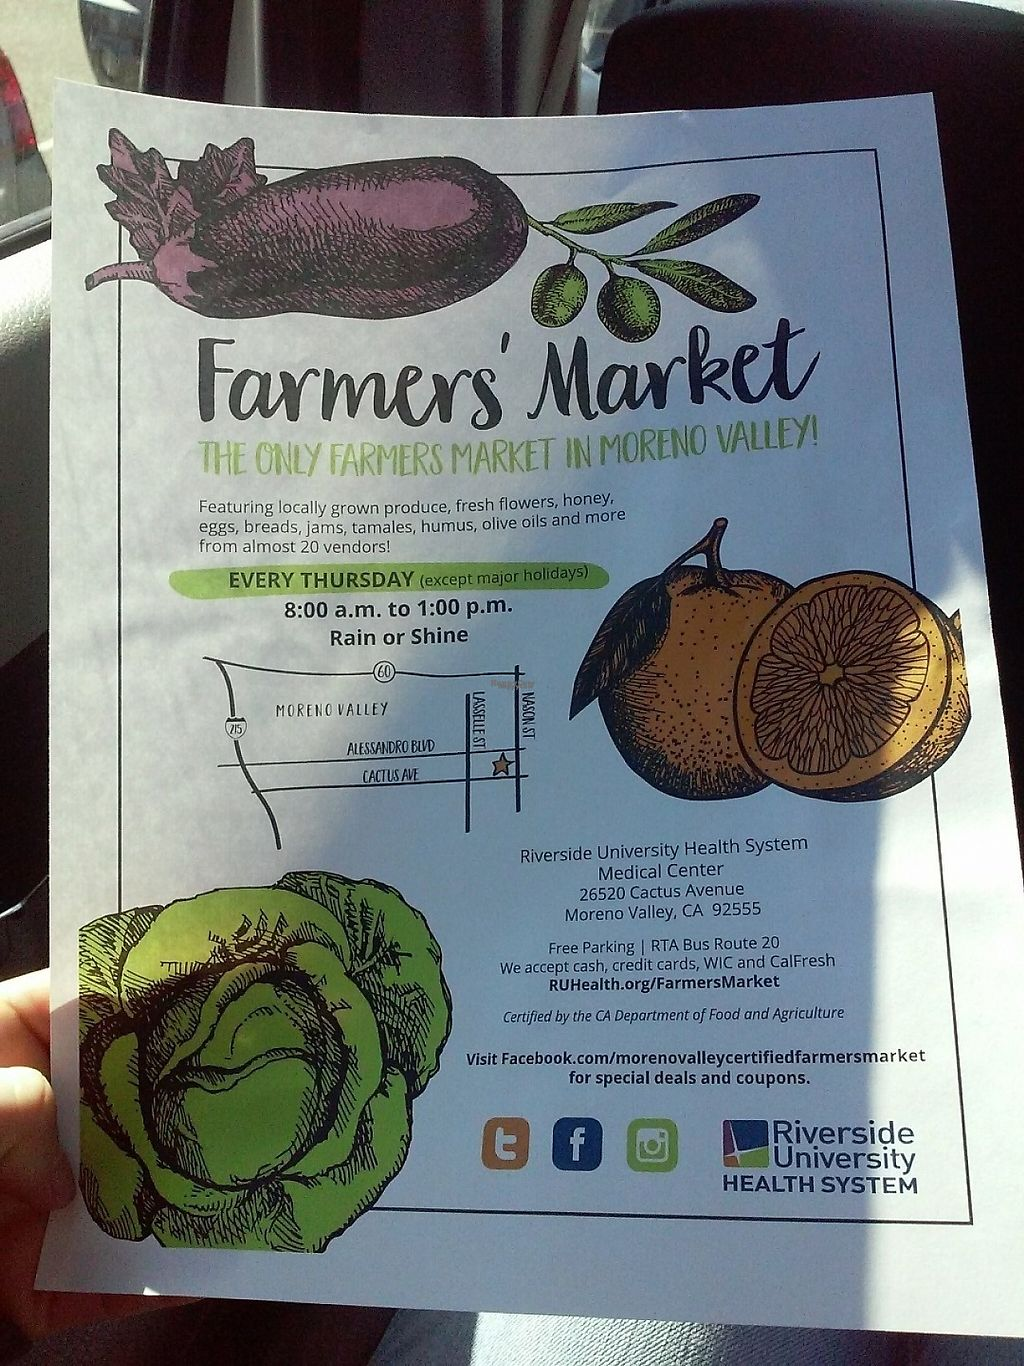 """Photo of Farmer's Market   by <a href=""""/members/profile/anastronomy"""">anastronomy</a> <br/>Farmer's Market Flyer <br/> December 30, 2016  - <a href='/contact/abuse/image/84750/206342'>Report</a>"""